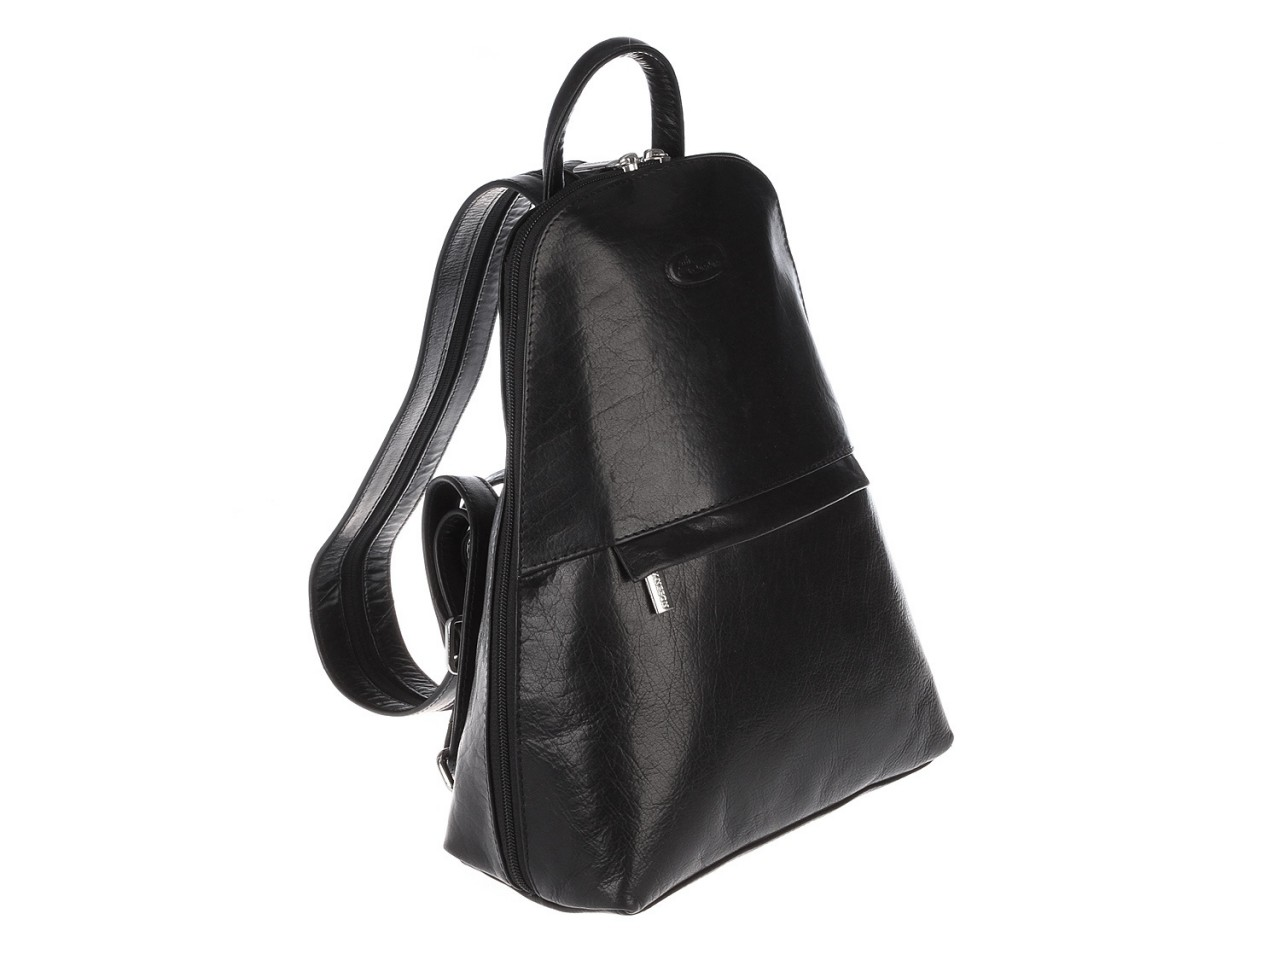 Small Black Backpack Purse rL8gFTcb